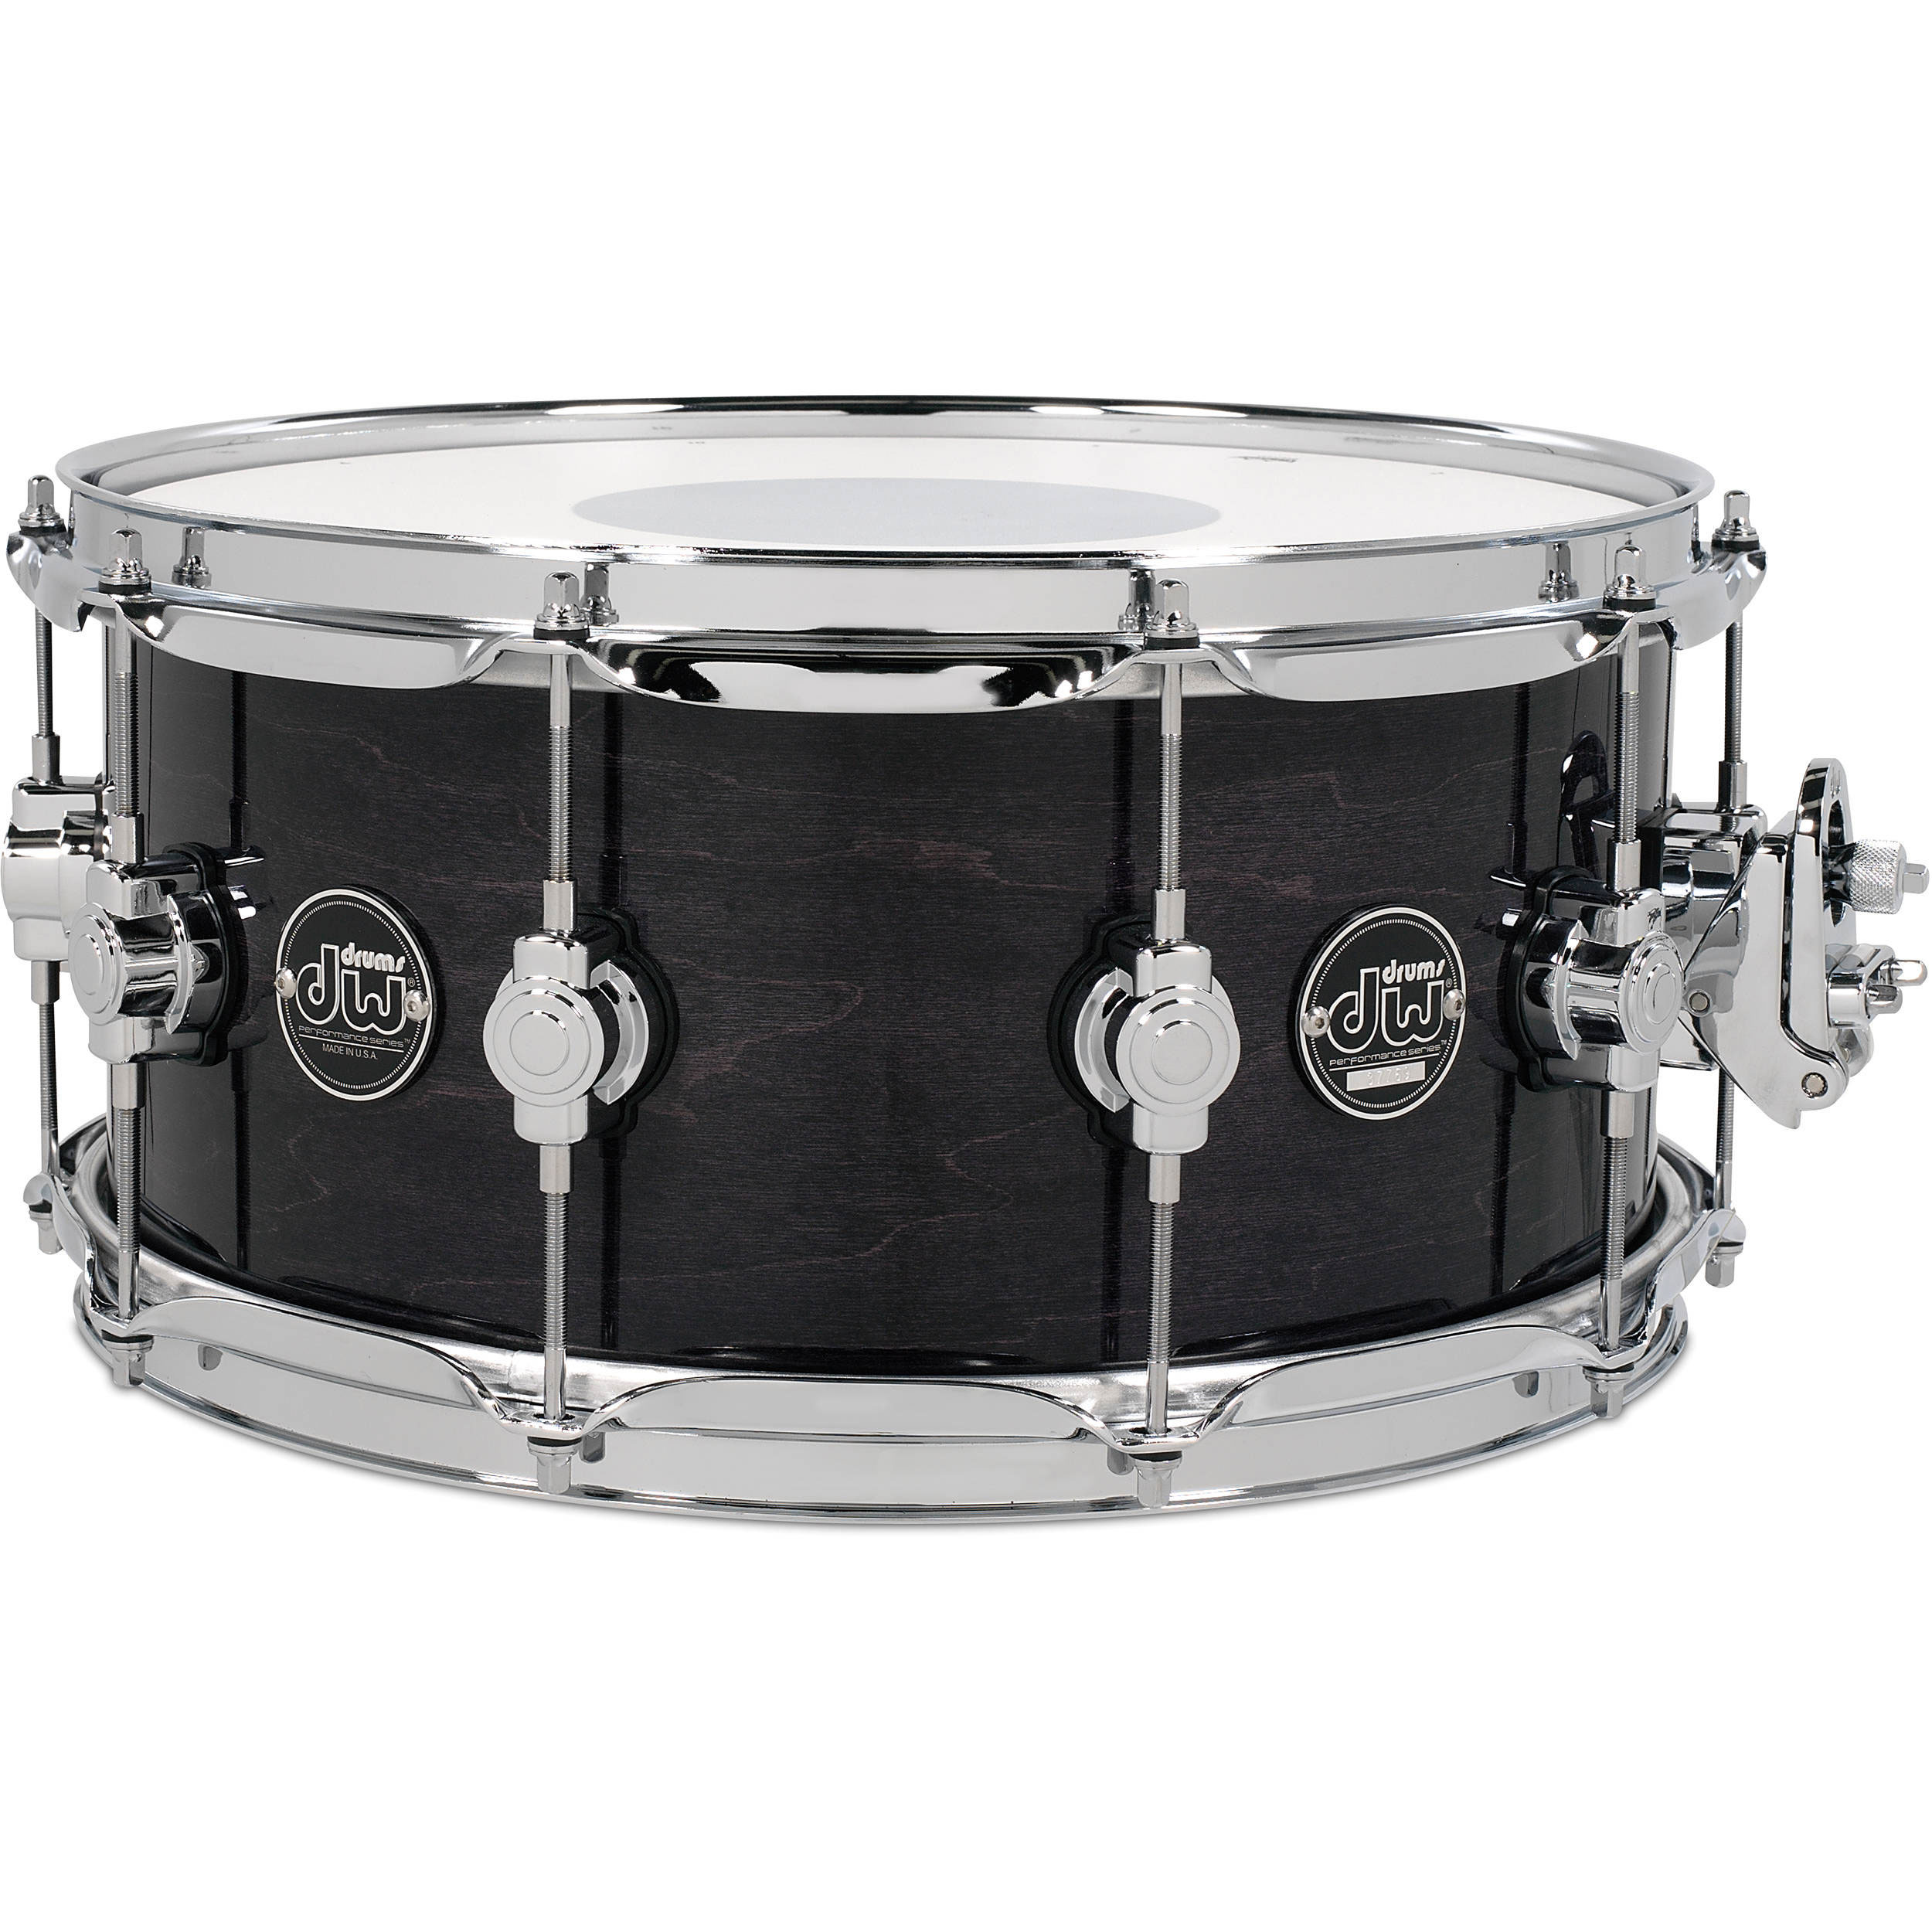 "DW 6.5"" x 14"" Performance Series Snare Drum in Specialty Lacquer Finish"